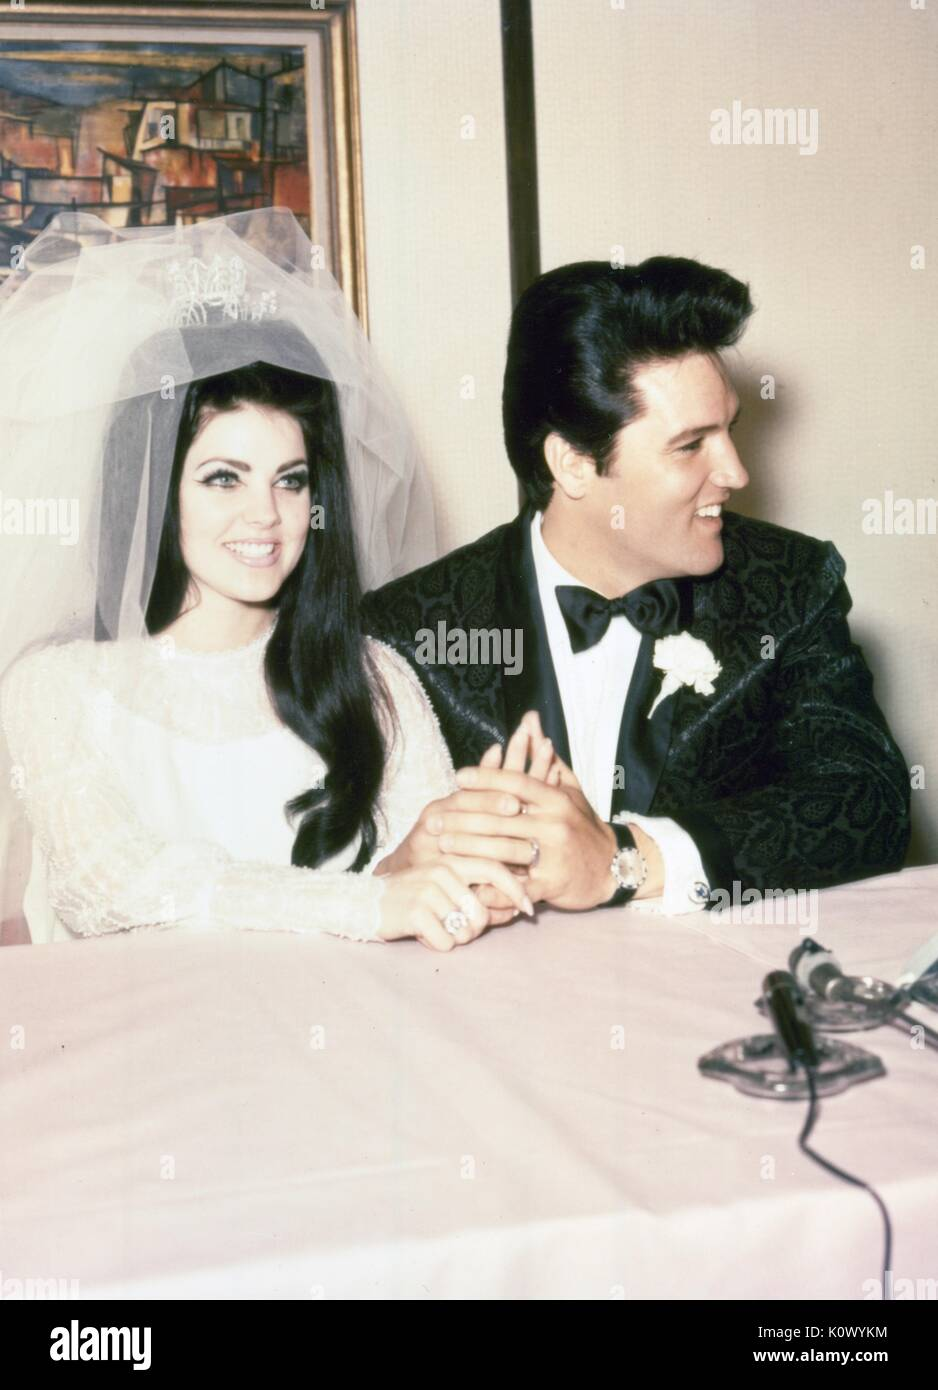 Elvis Presley and Priscilla Presley wedding photo, wearing tuxedo and wedding dress, smiling and holding hands, during a press conference following their marriage, May, 1967. Photo credit Smith Collection/Gado/Getty Images. - Stock Image